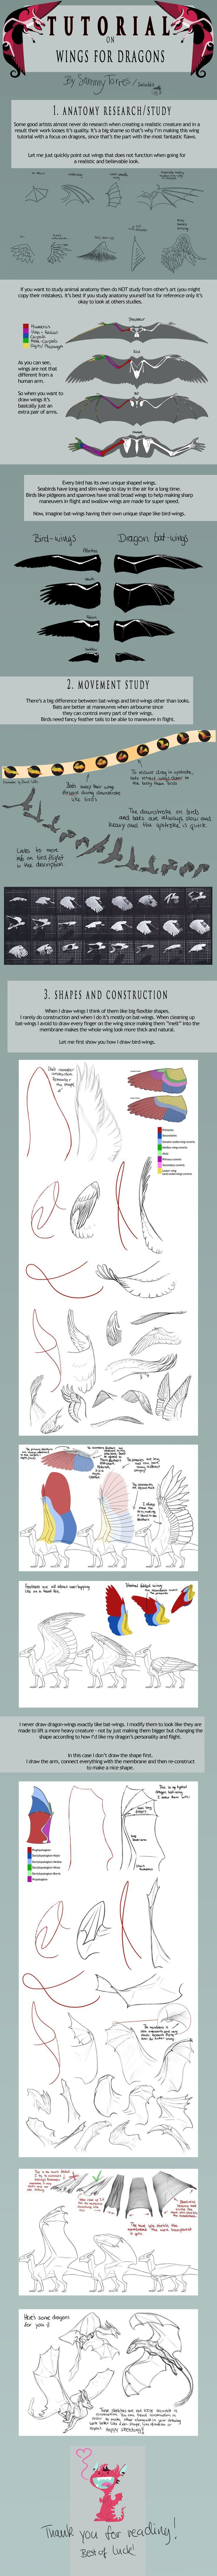 TUTORIAL: Wings for Dragons by SammyTorres on deviantART